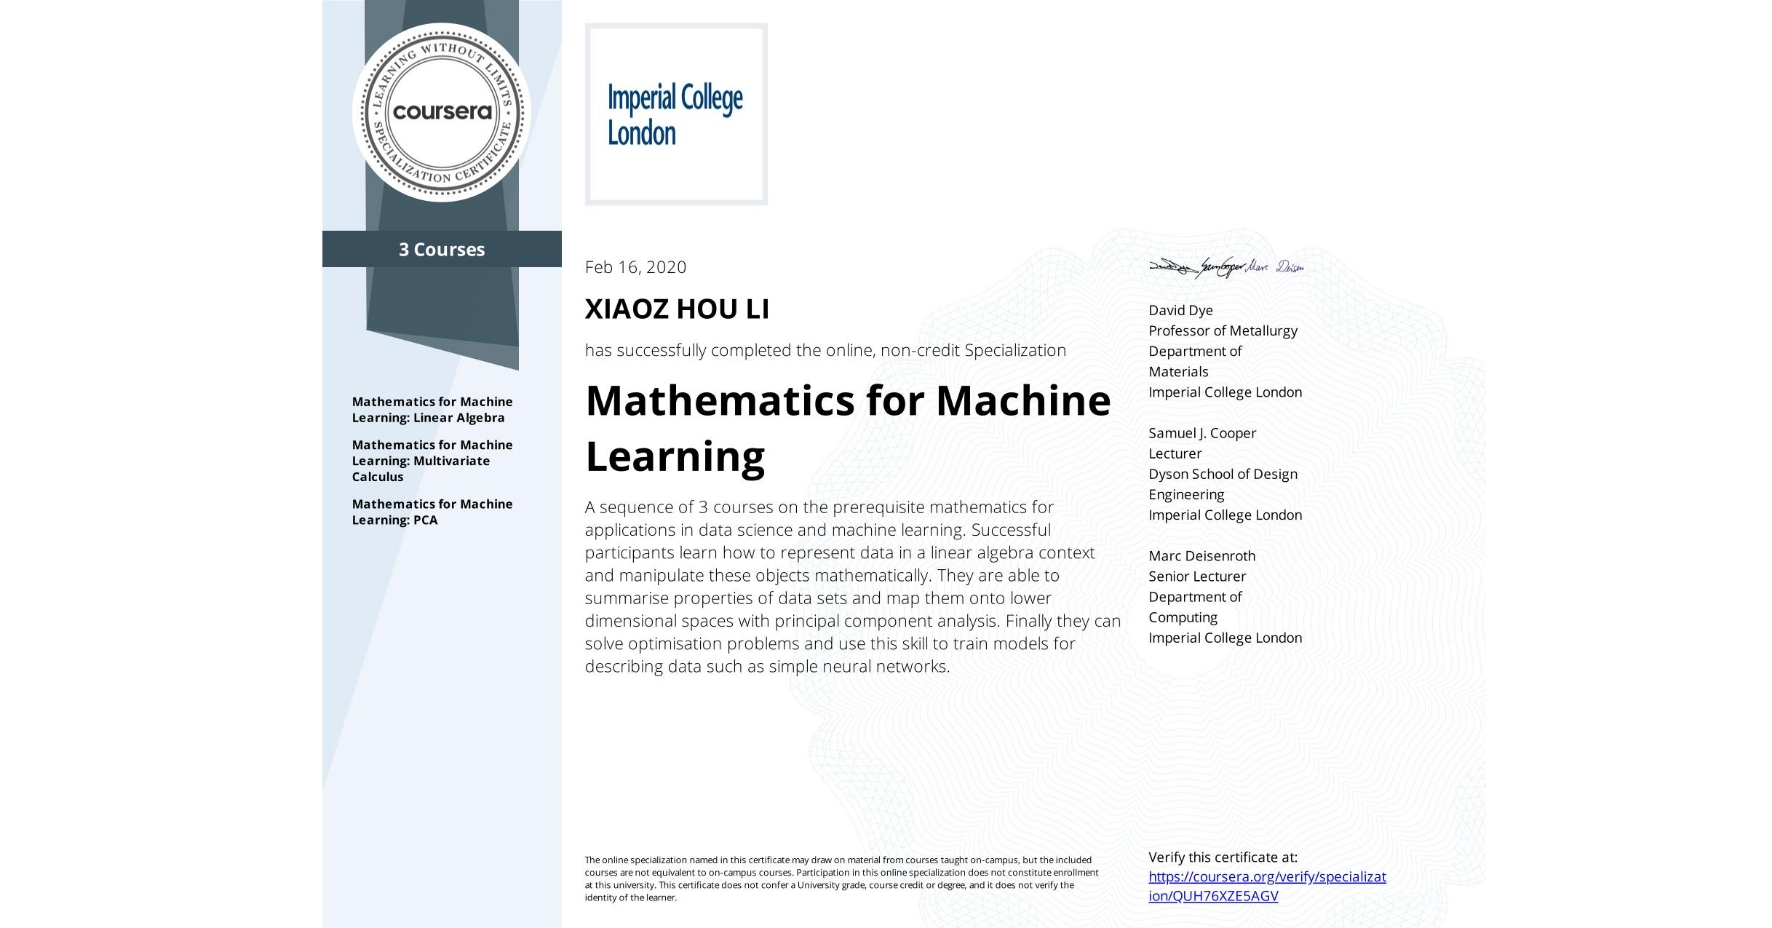 View certificate for XIAOZ HOU  LI, Mathematics for Machine Learning, offered through Coursera. A sequence of 3 courses on the prerequisite mathematics for applications in data science and machine learning.   Successful participants learn how to represent data in a linear algebra context and manipulate these objects mathematically. They are able to summarise properties of data sets and map them onto lower dimensional spaces with principal component analysis. Finally they can solve optimisation problems and use this skill to train models for describing data such as simple neural networks.